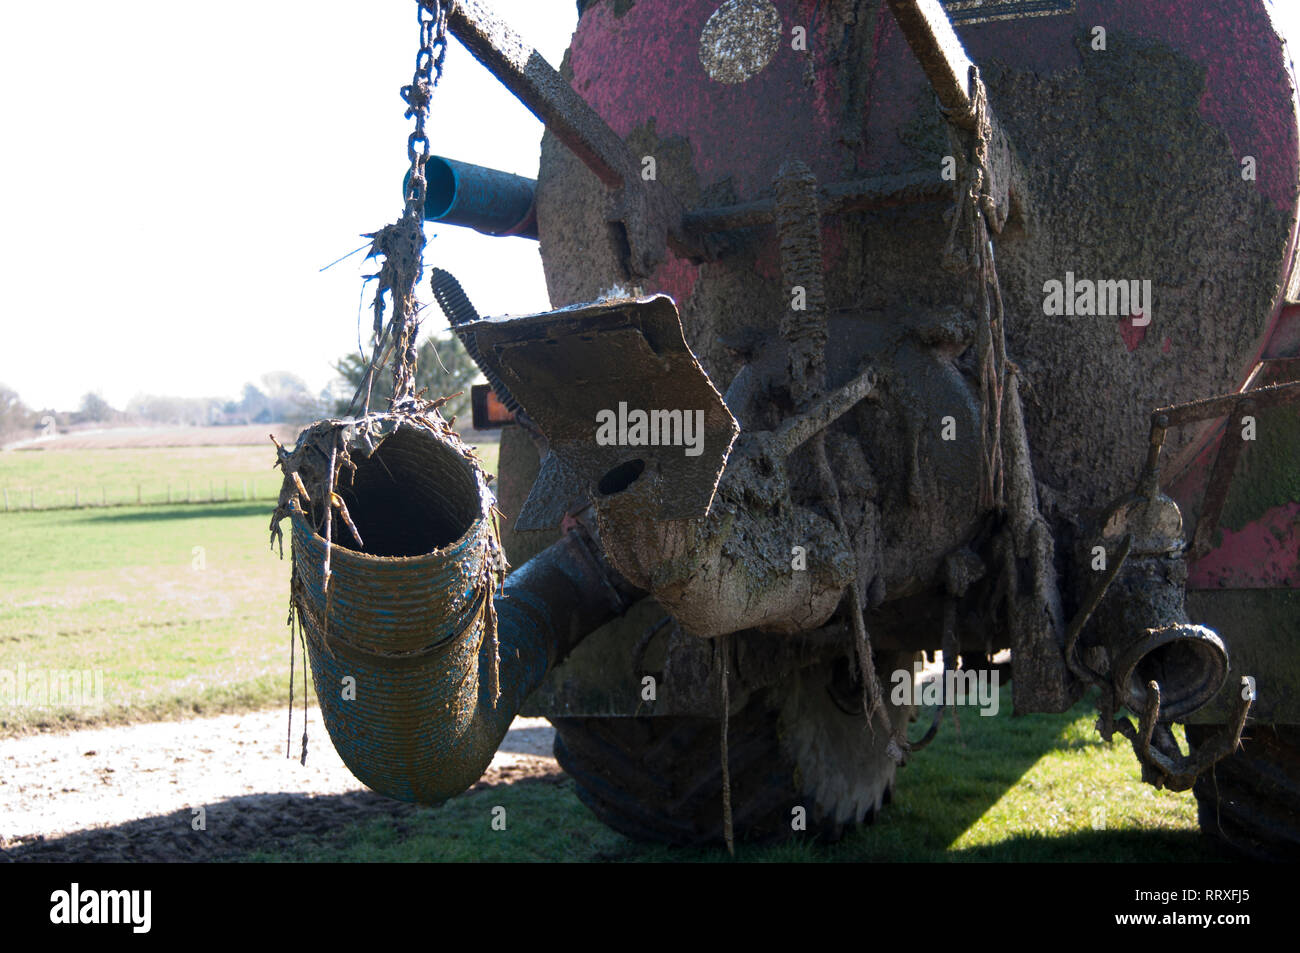 Muck Spreader Close Up - Stock Image